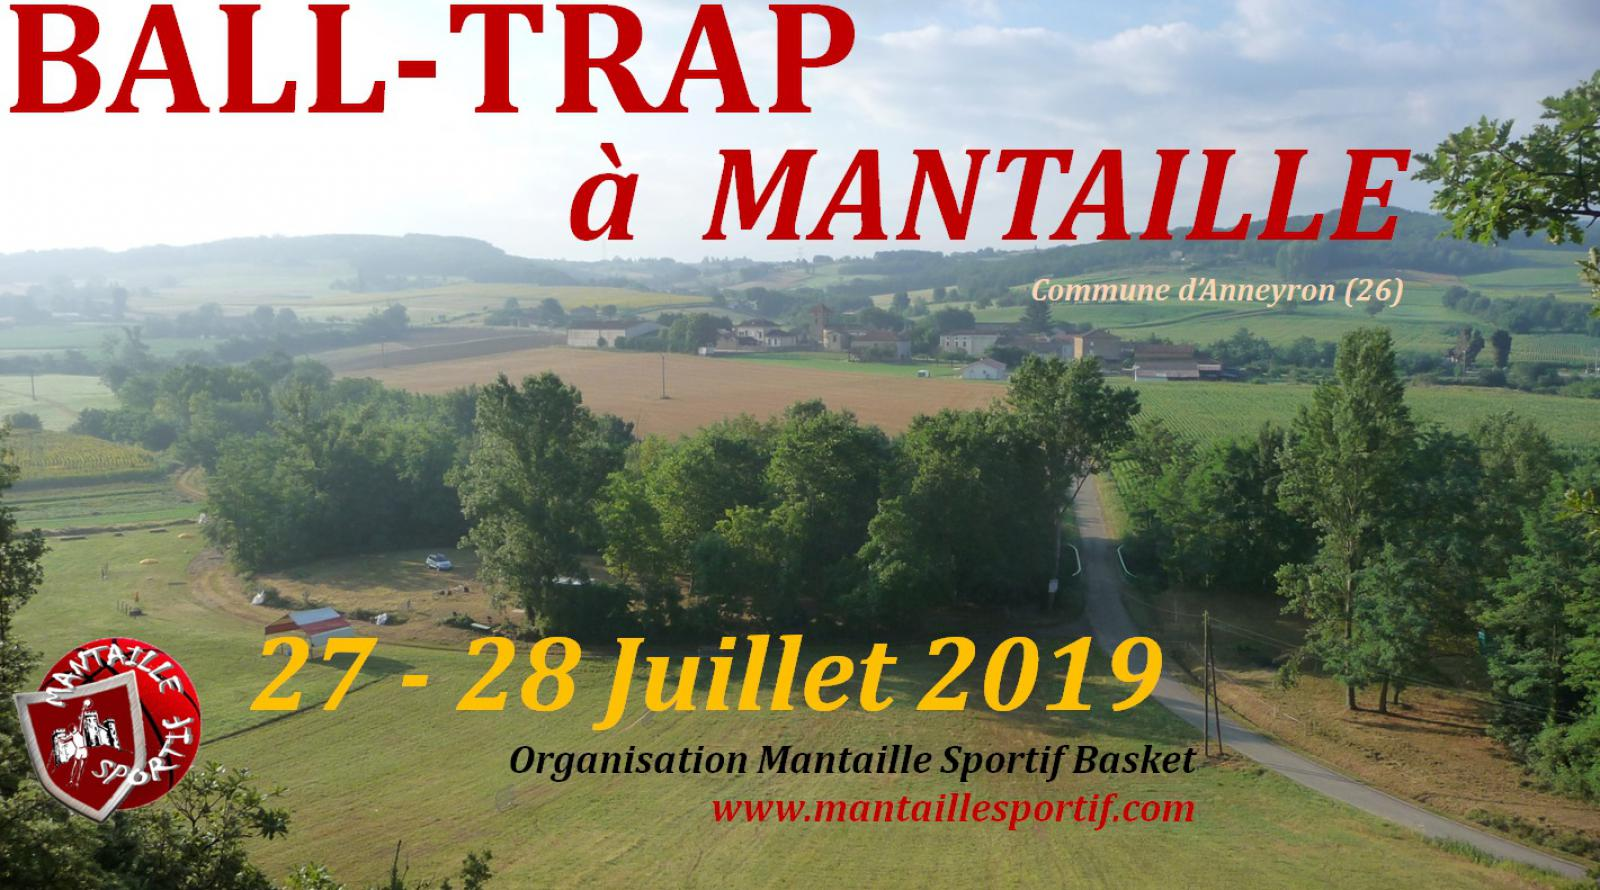 Ball-trap à Mantaille - 27 & 28 juillet 2019